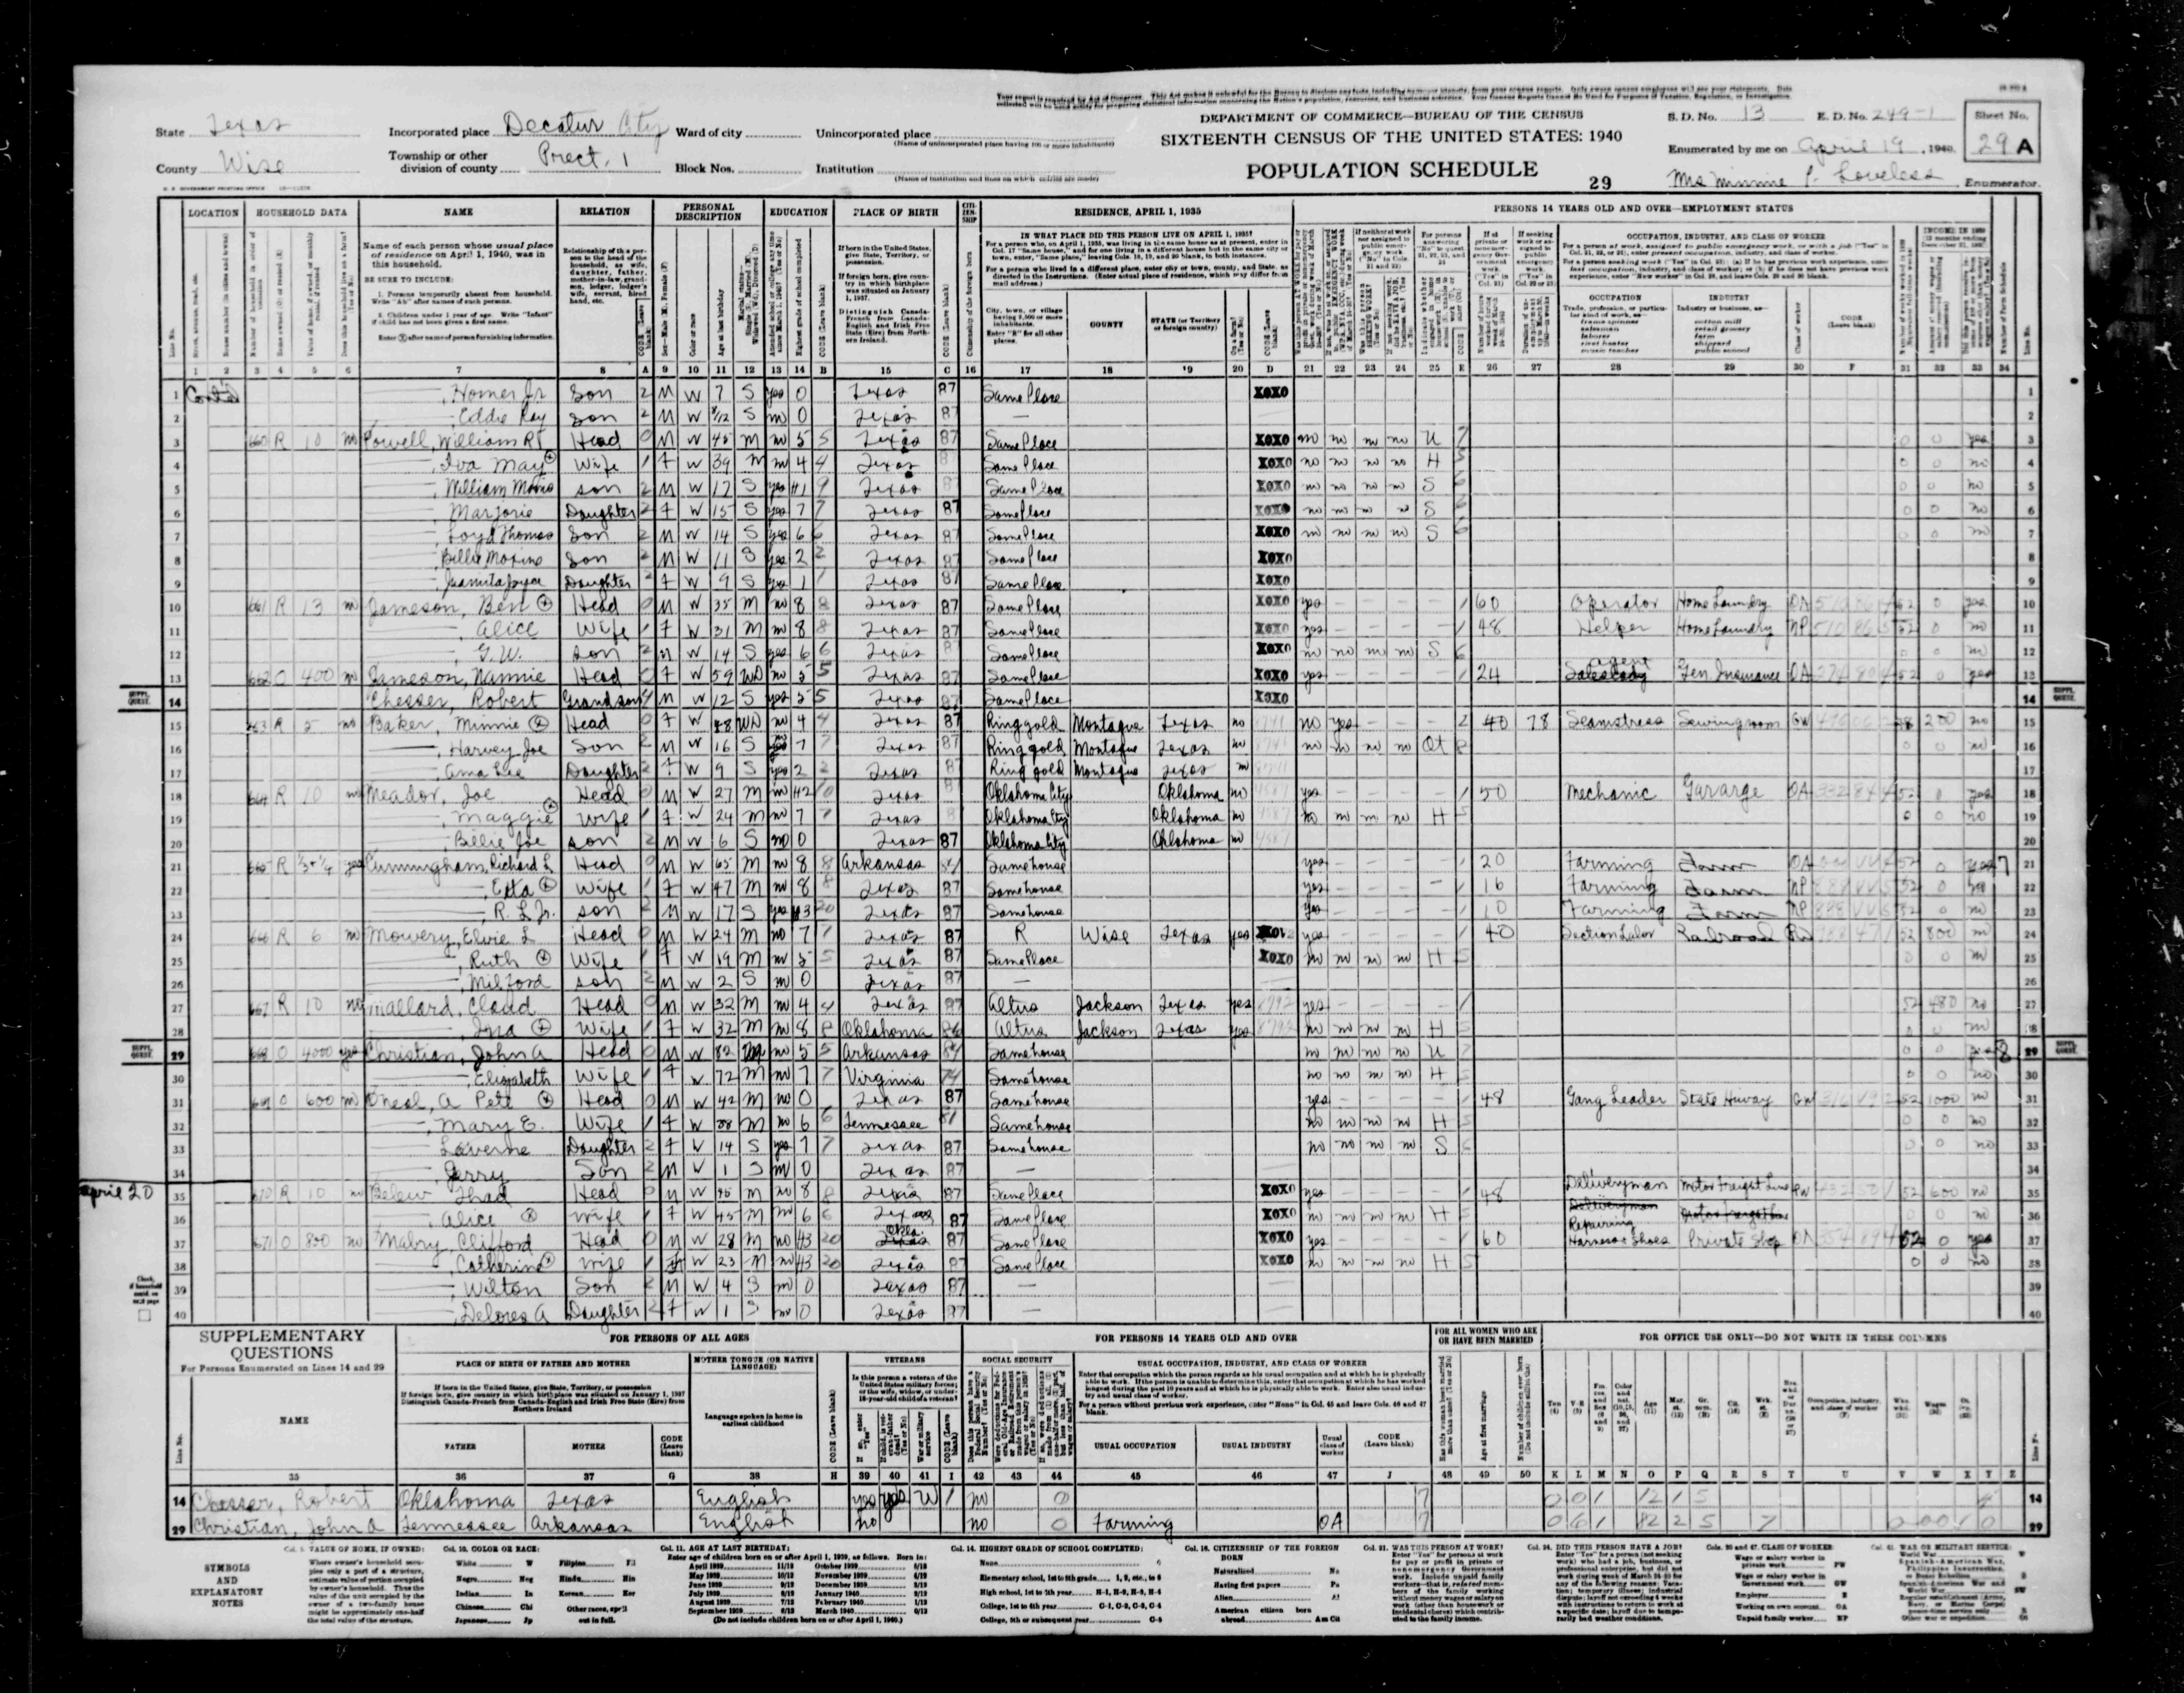 wise county tx 1940 census index of all s m n 01 29a 27 mallard claud head 32 decatur town